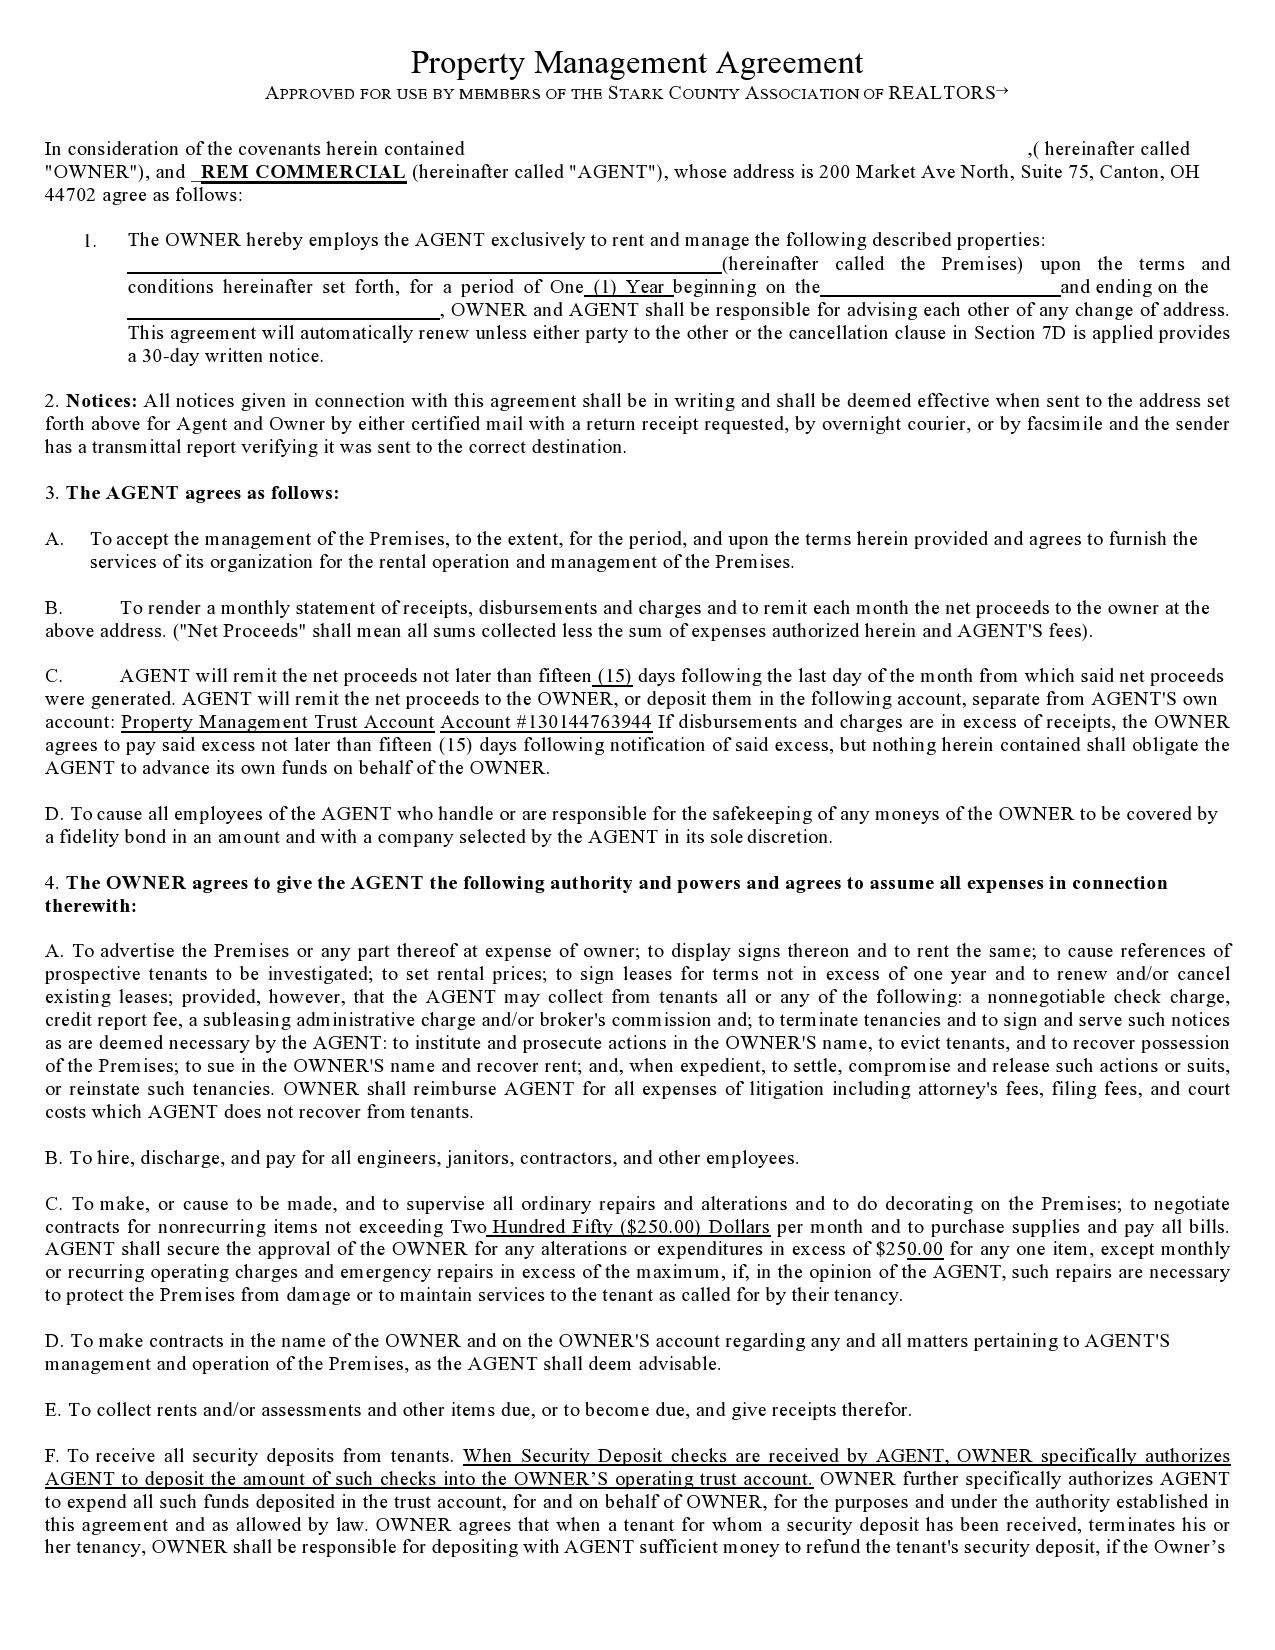 Property Management Agreements